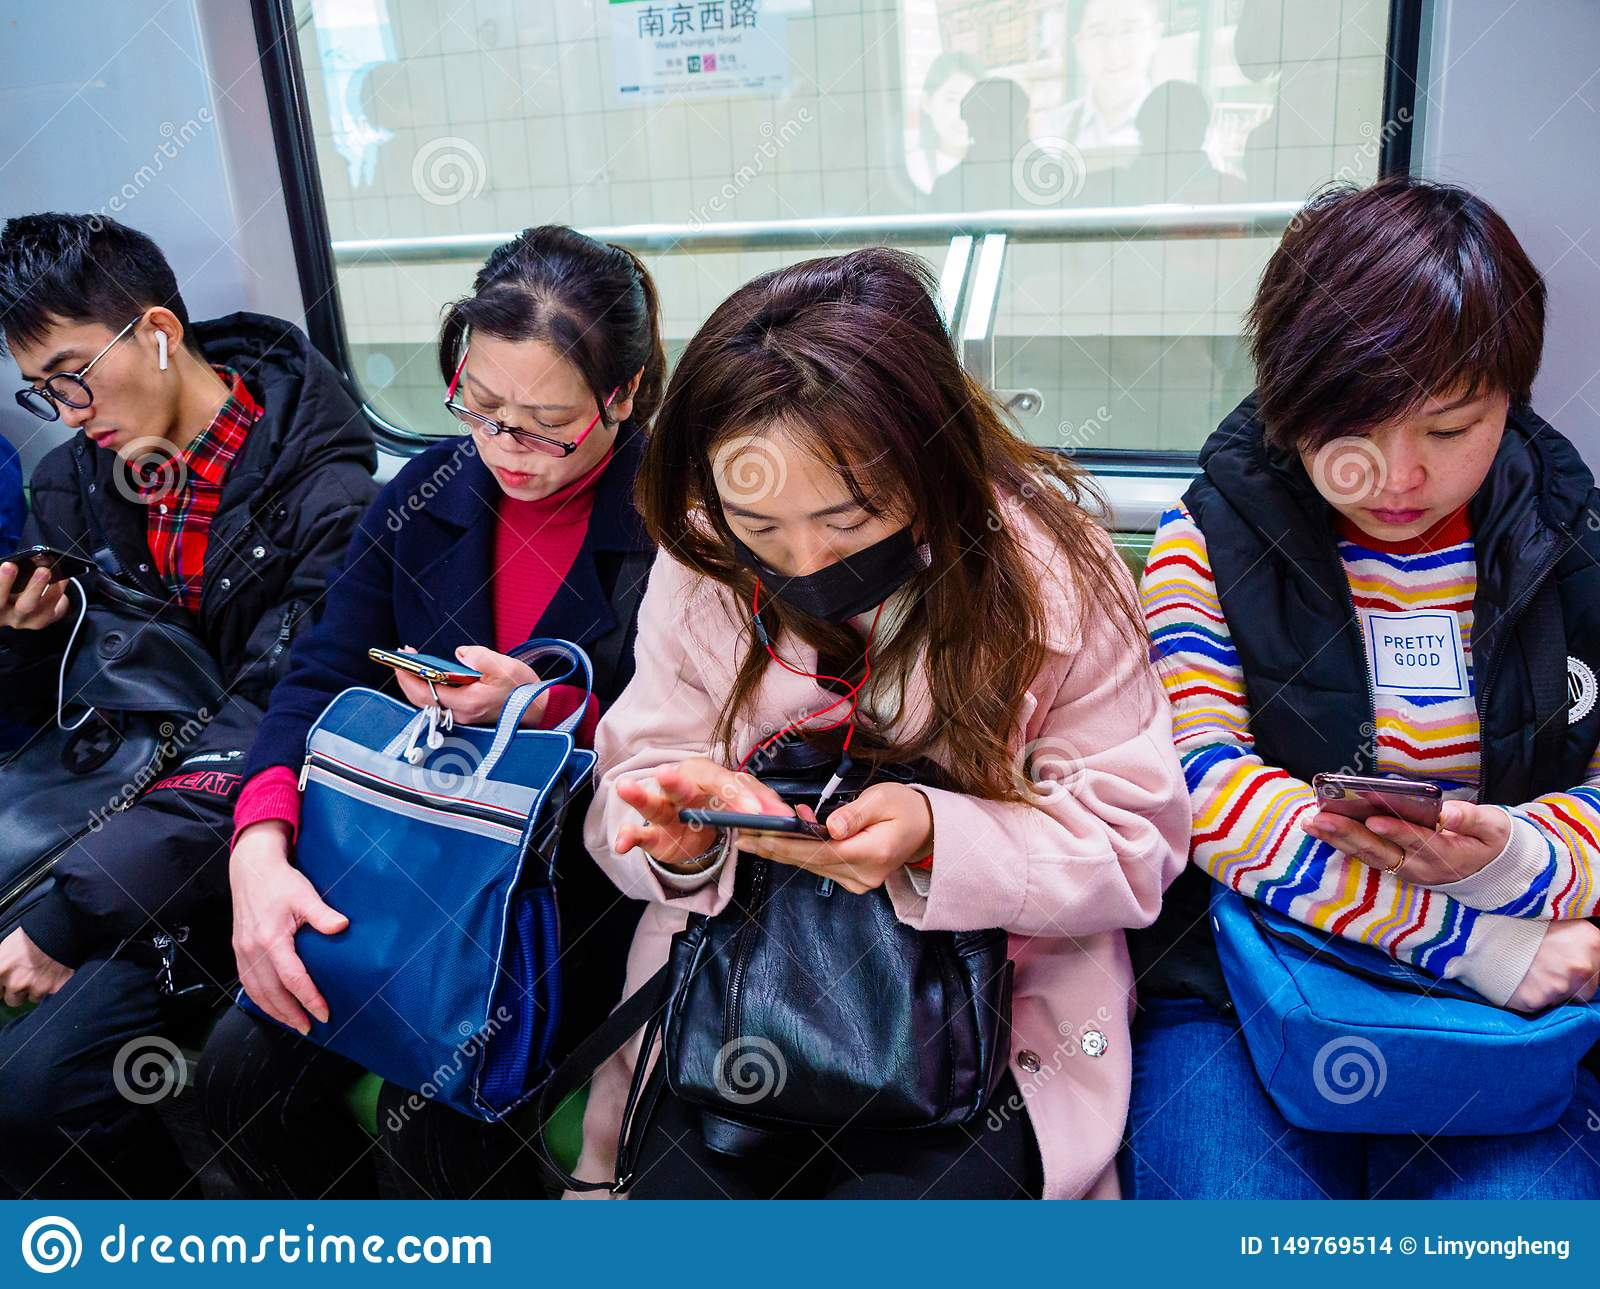 SHANGHAI, CHINA - 12 MAR 2019 - a row of commuters on the Shanghai Metro all on their smartphones. China has an extremely high